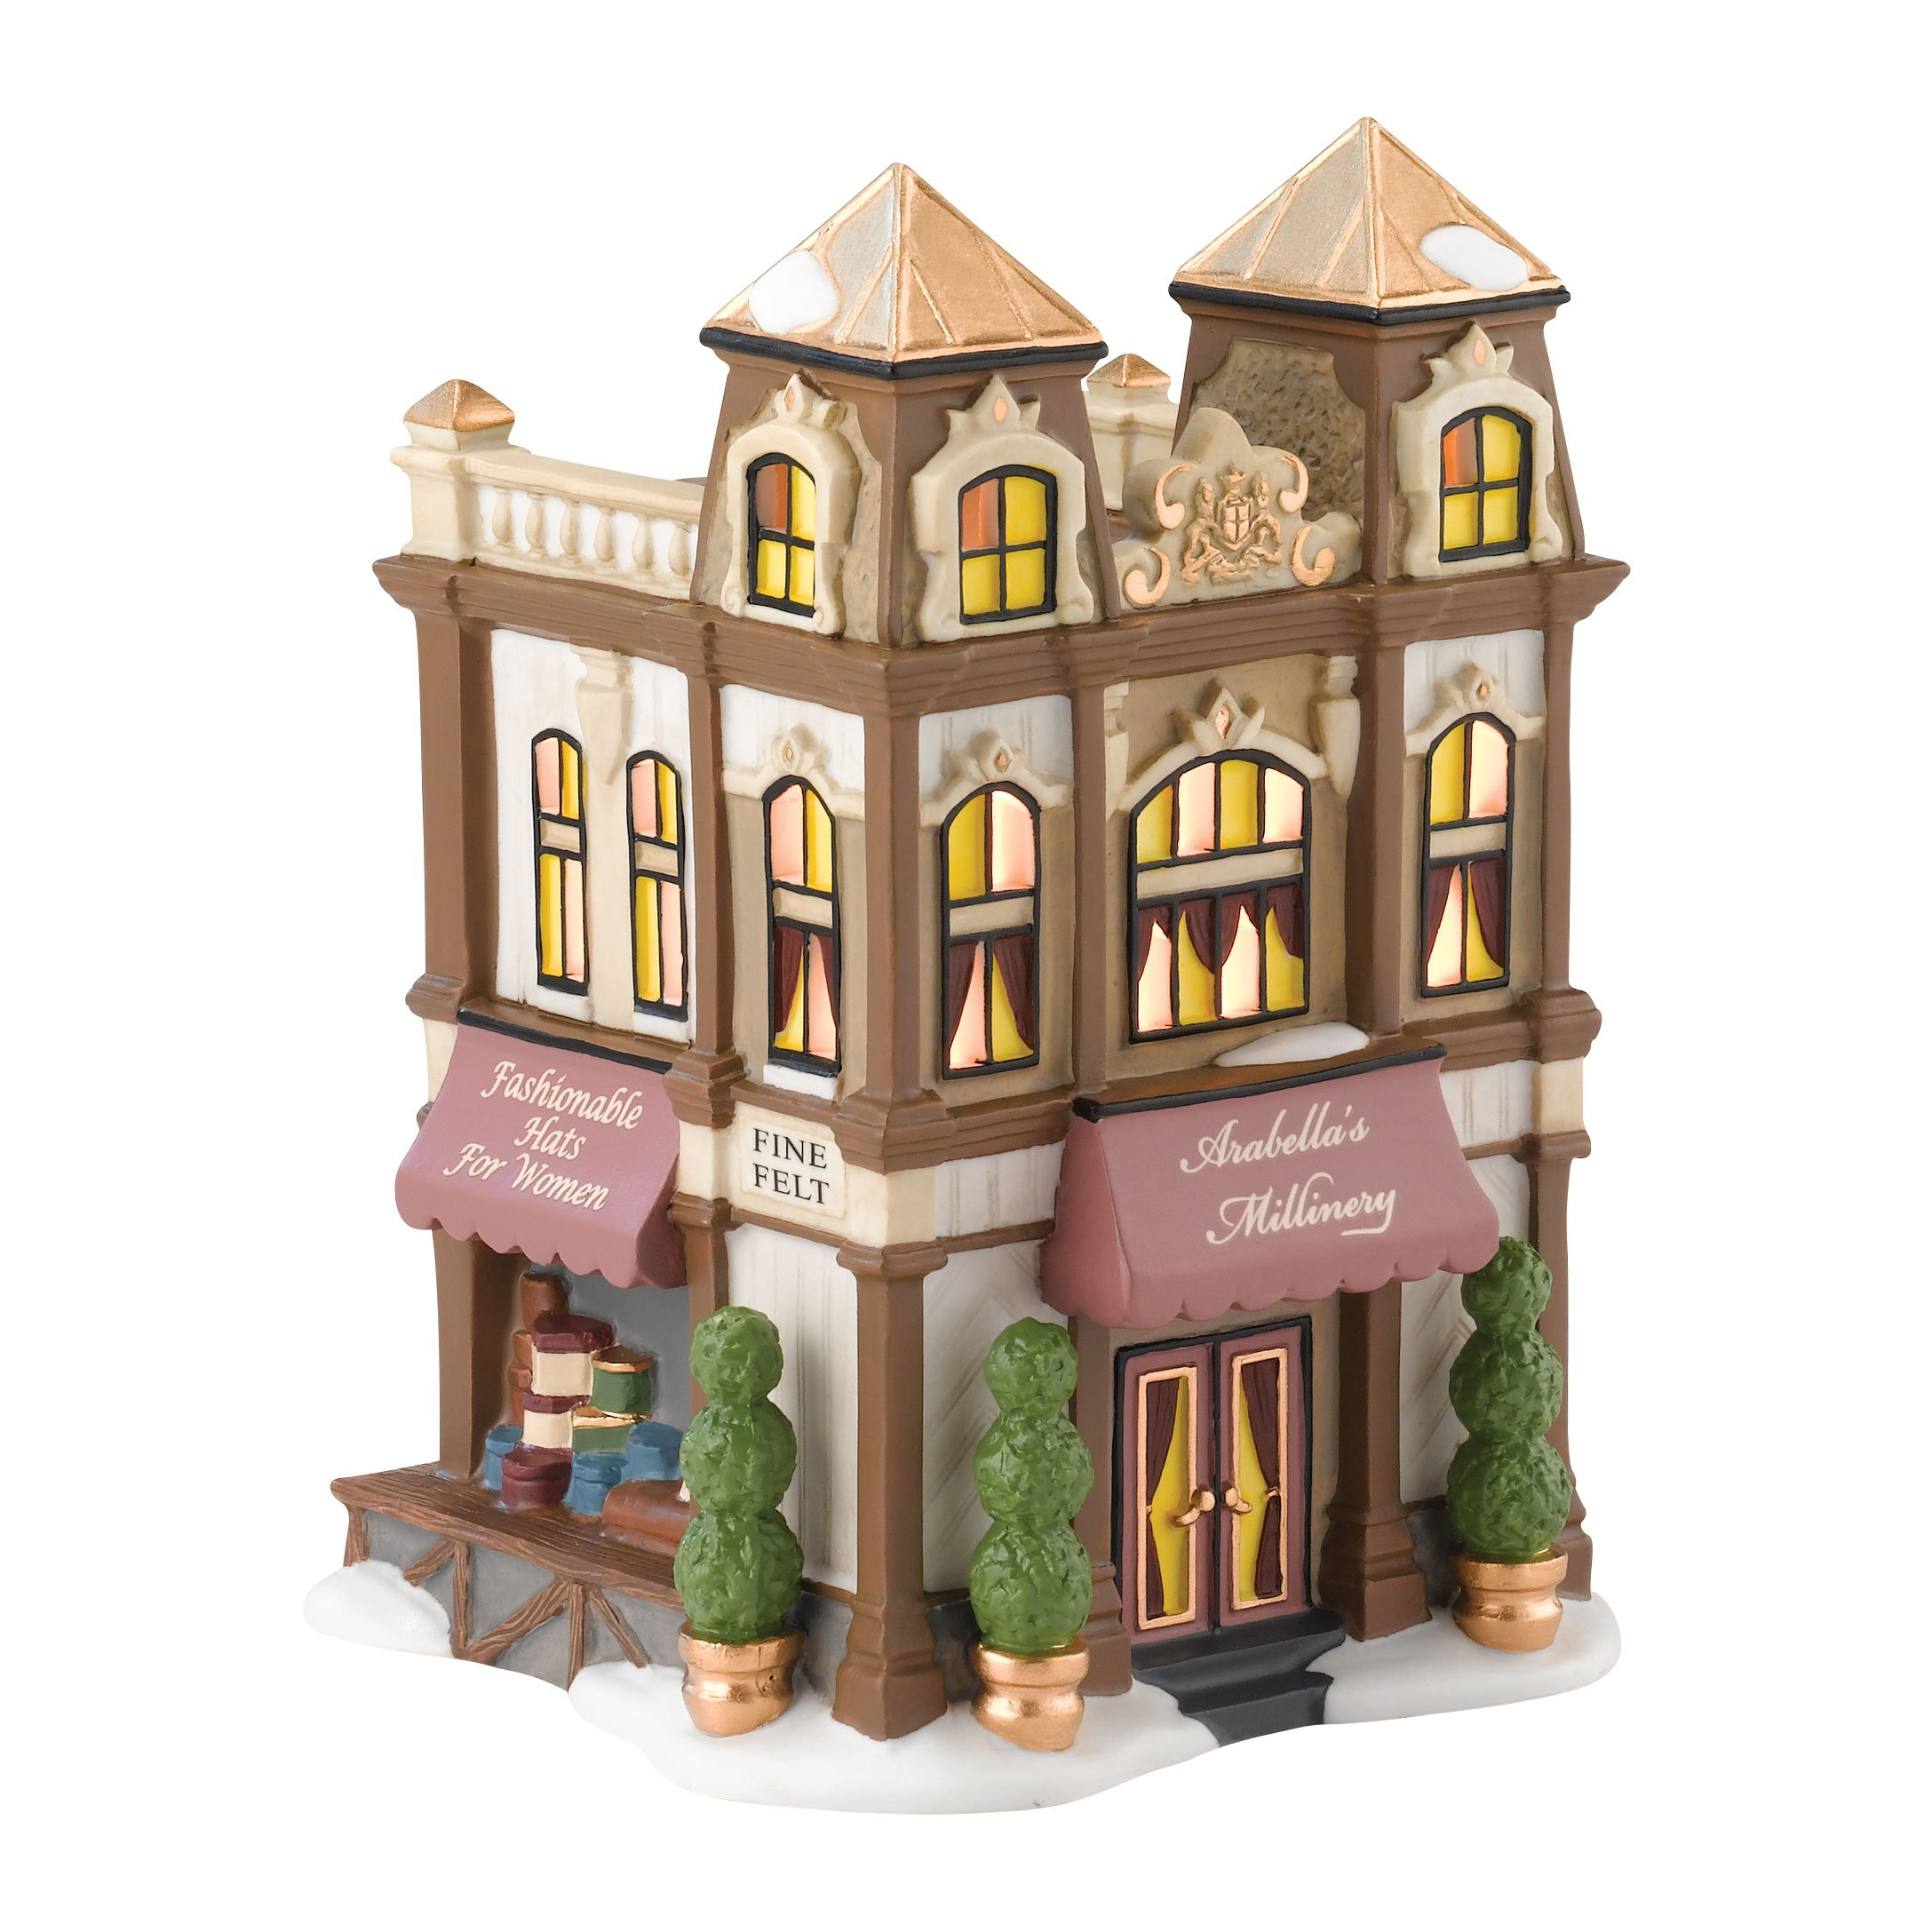 Department 56 Dickens' Village Arabella's Millinery Lit House, 6.69 inch